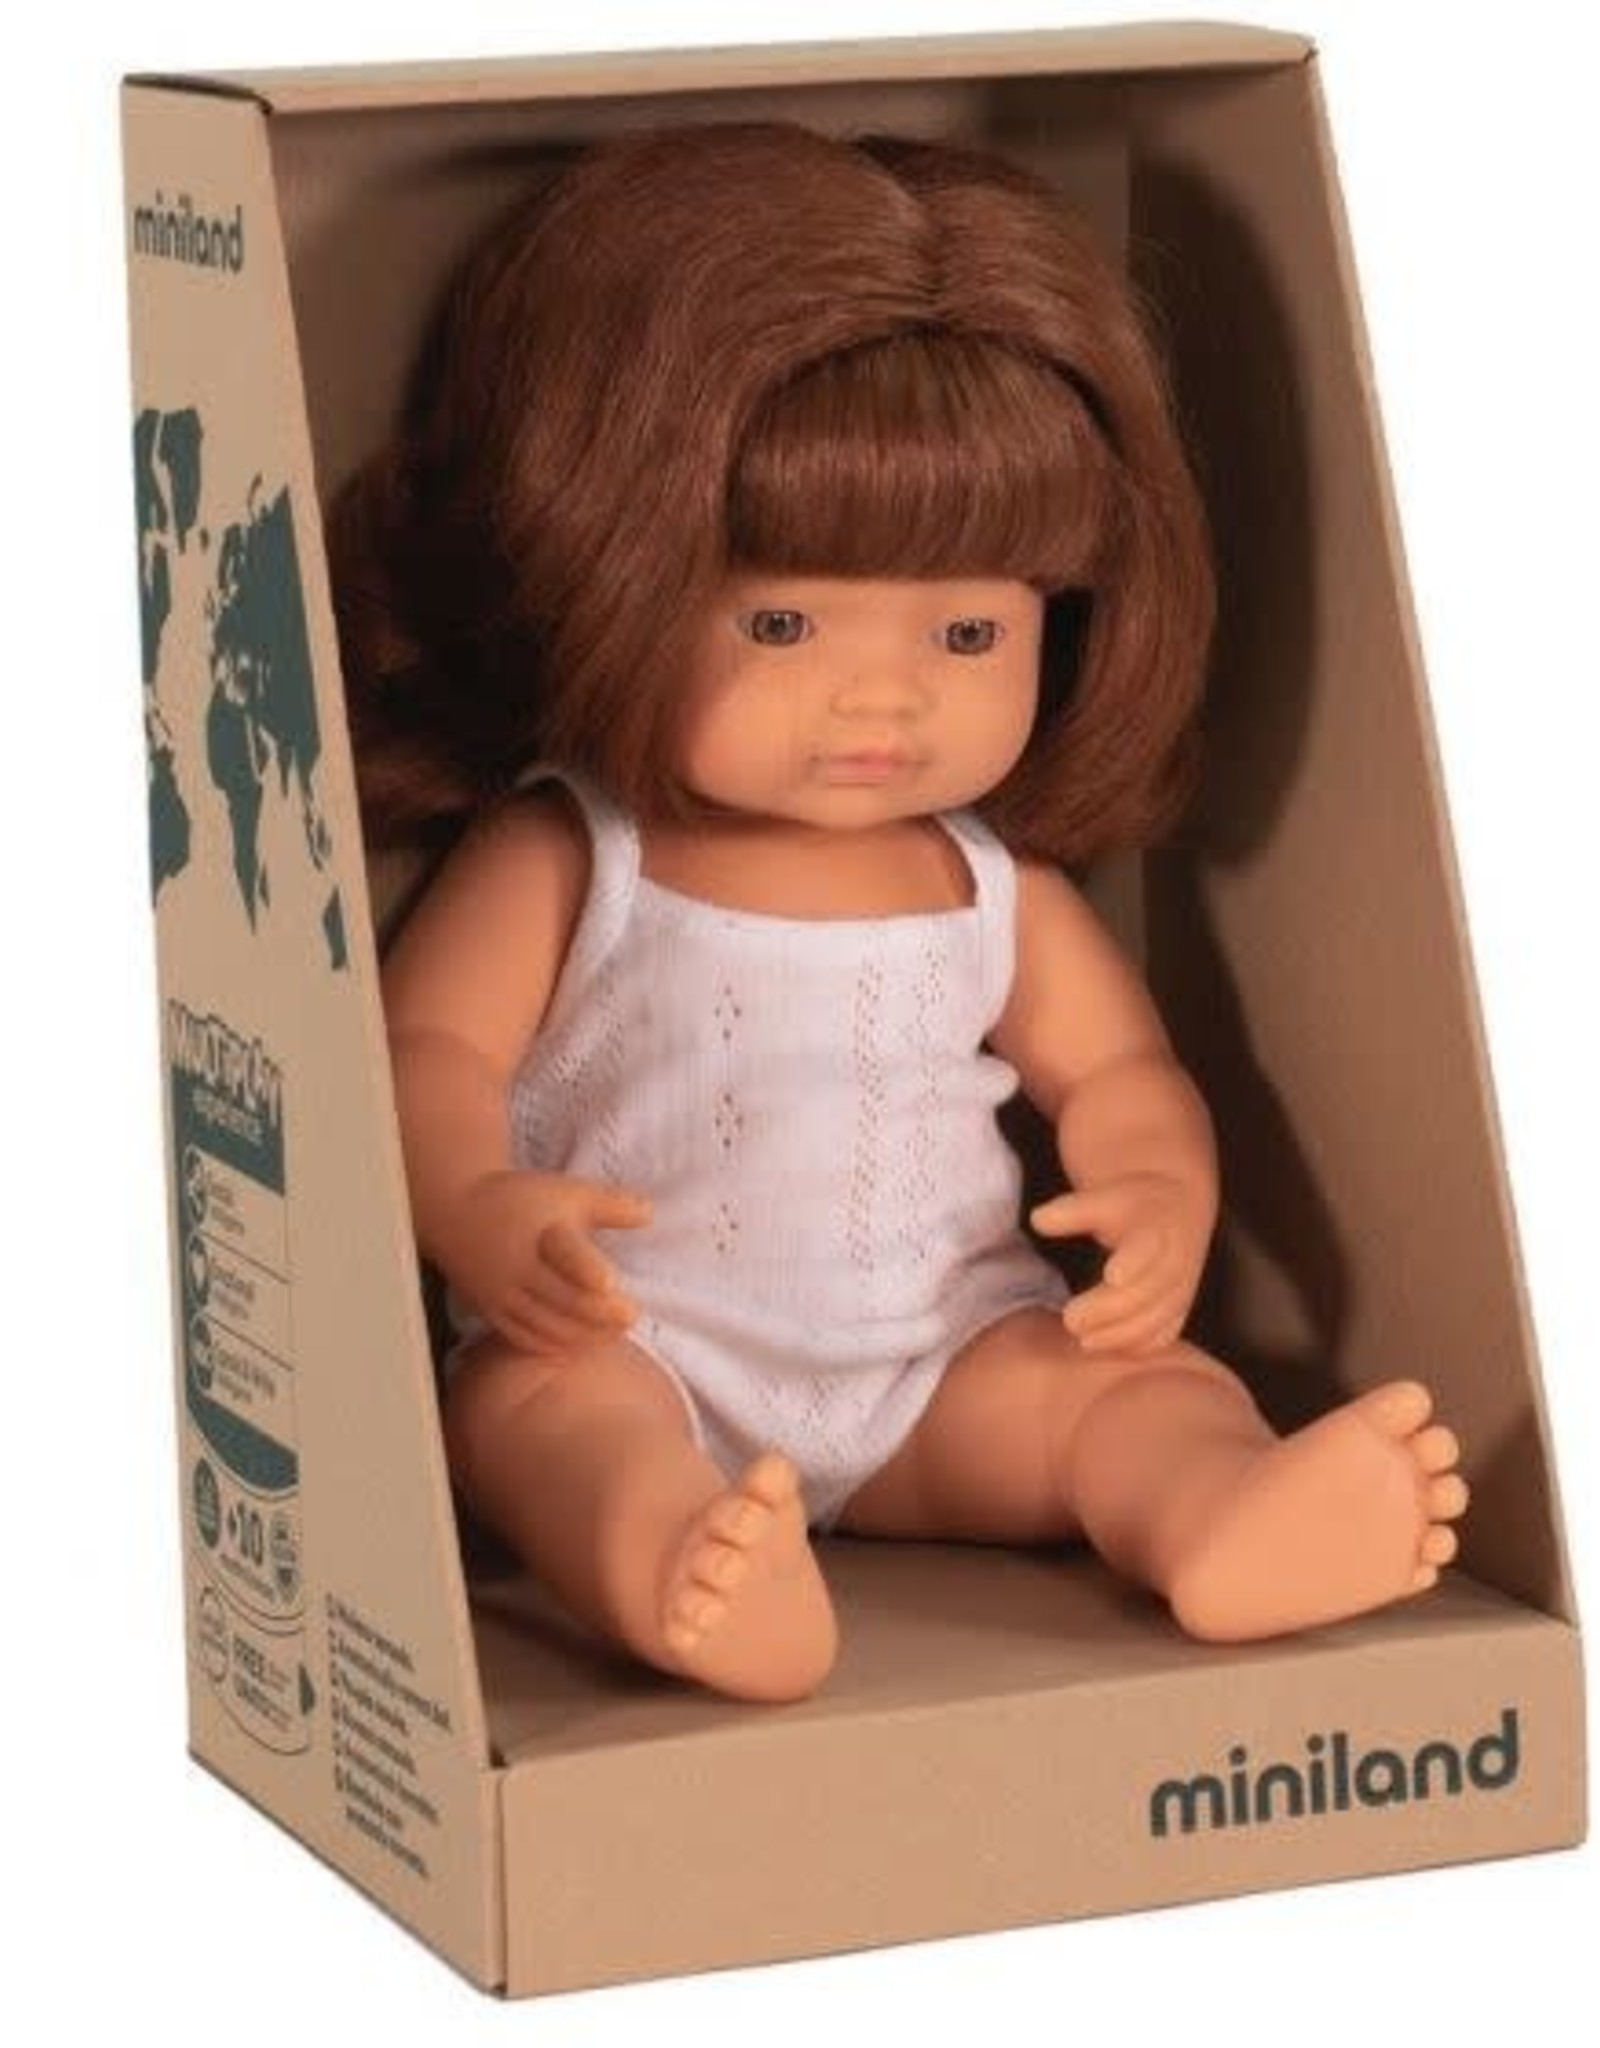 Miniland Miniland Doll - New Girl Red Hair